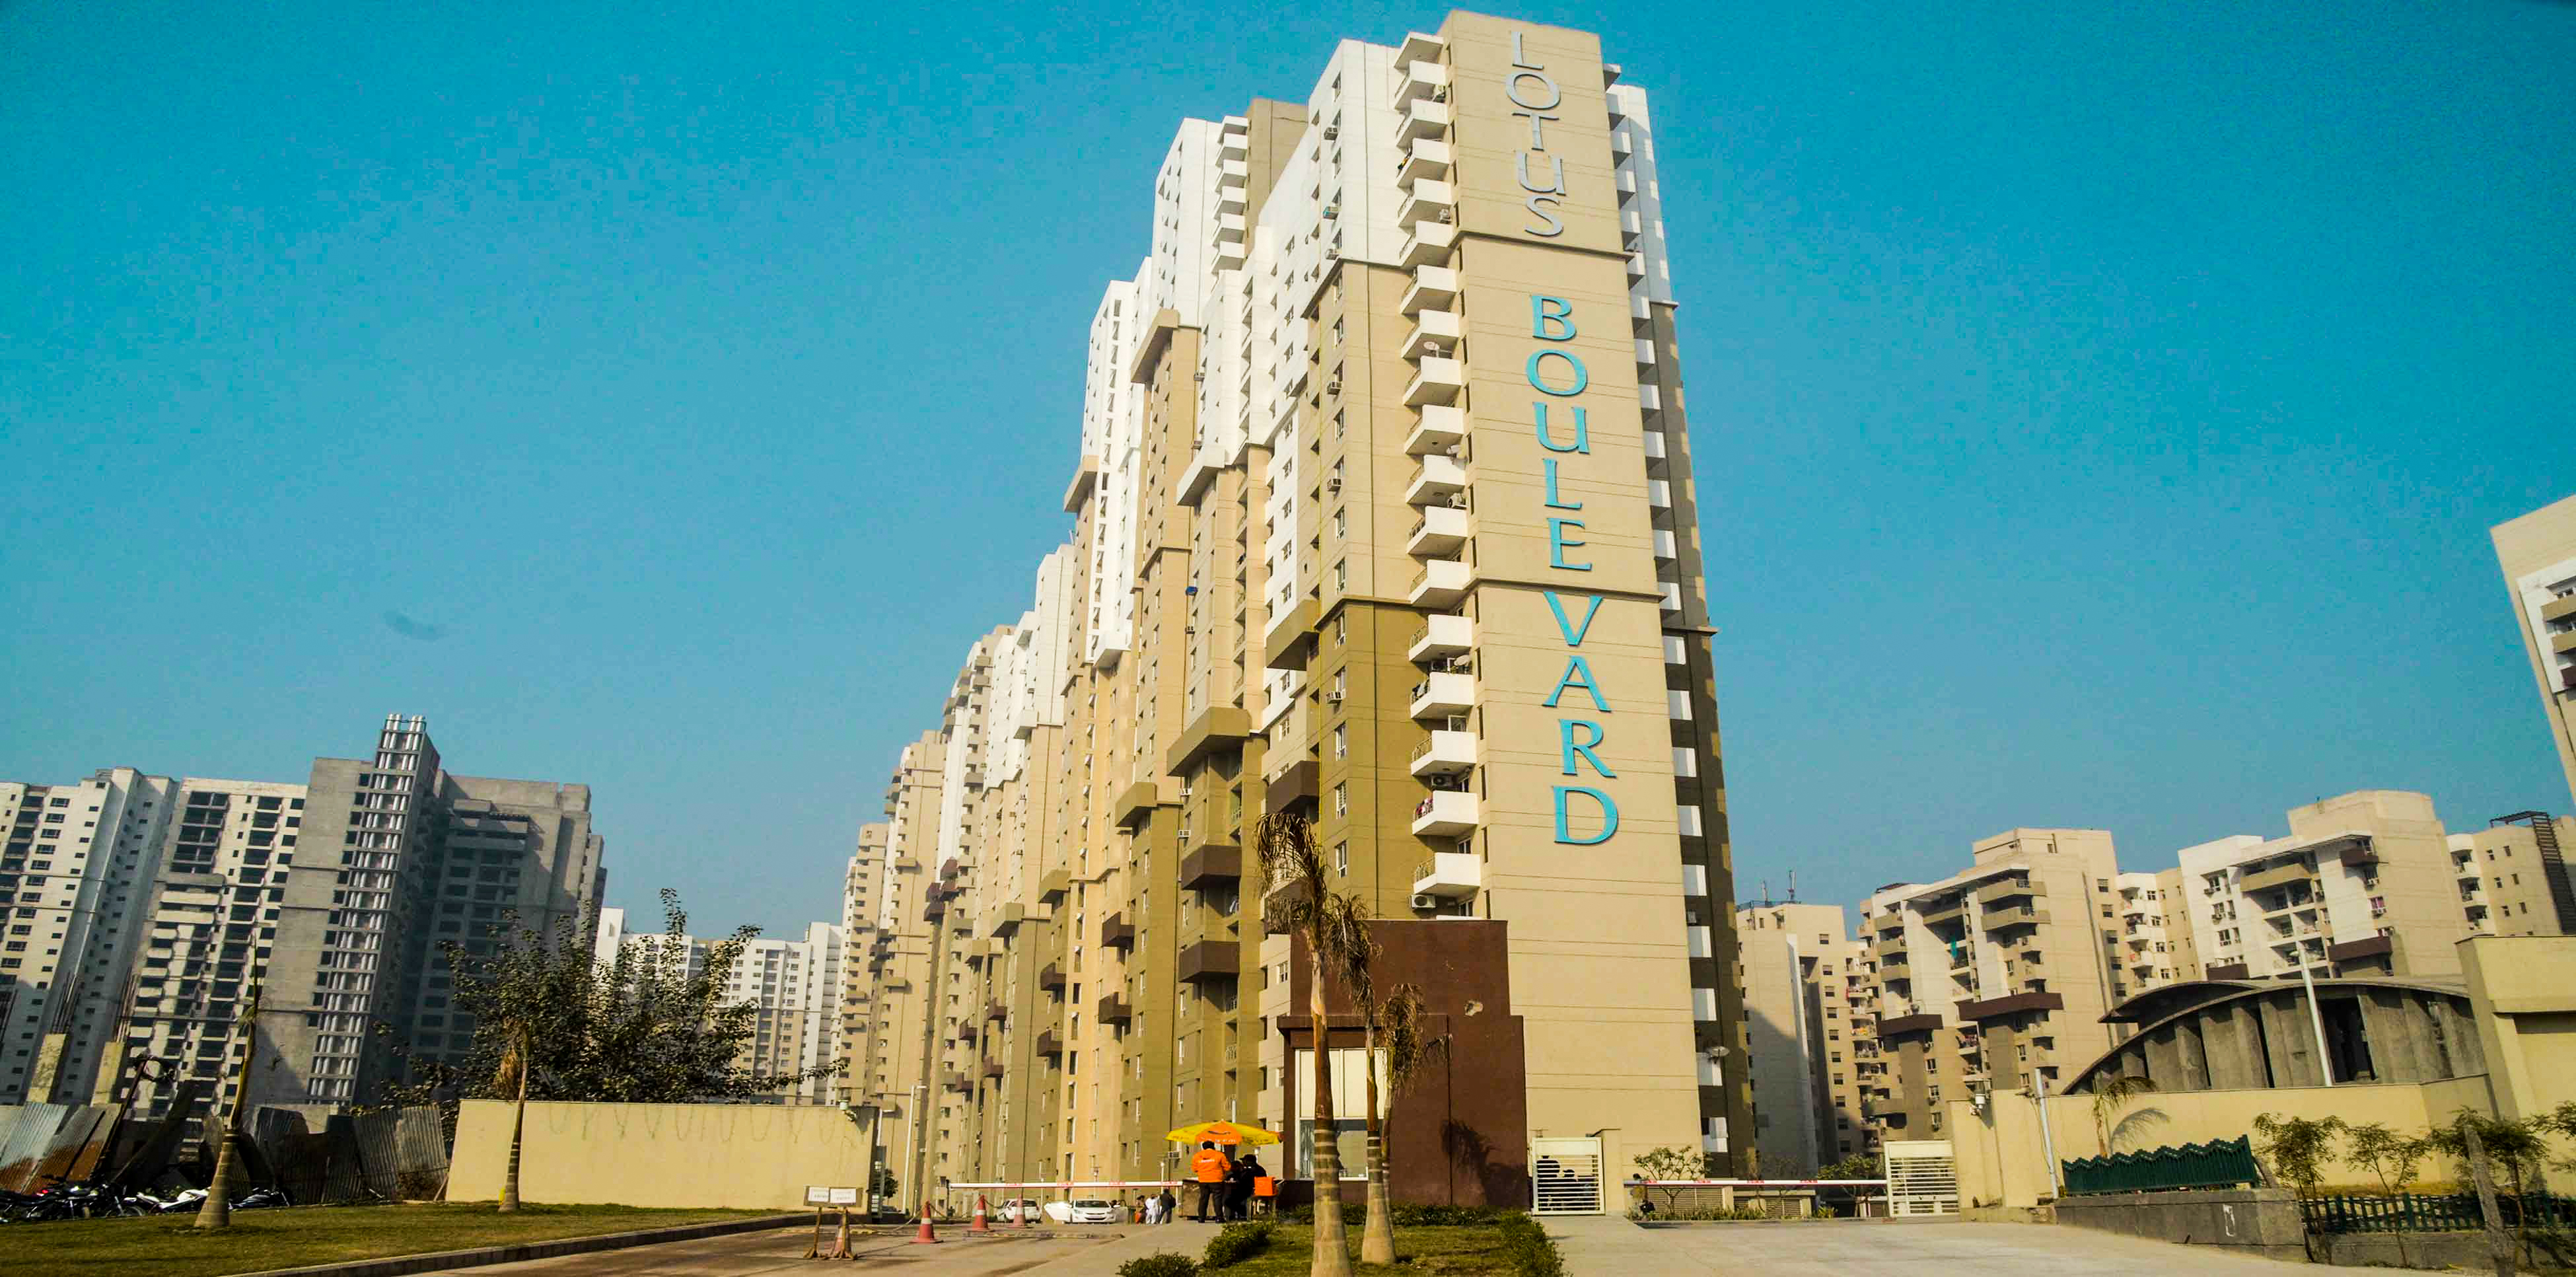 Noida: 3C home buyers upbeat over RERA's forensic